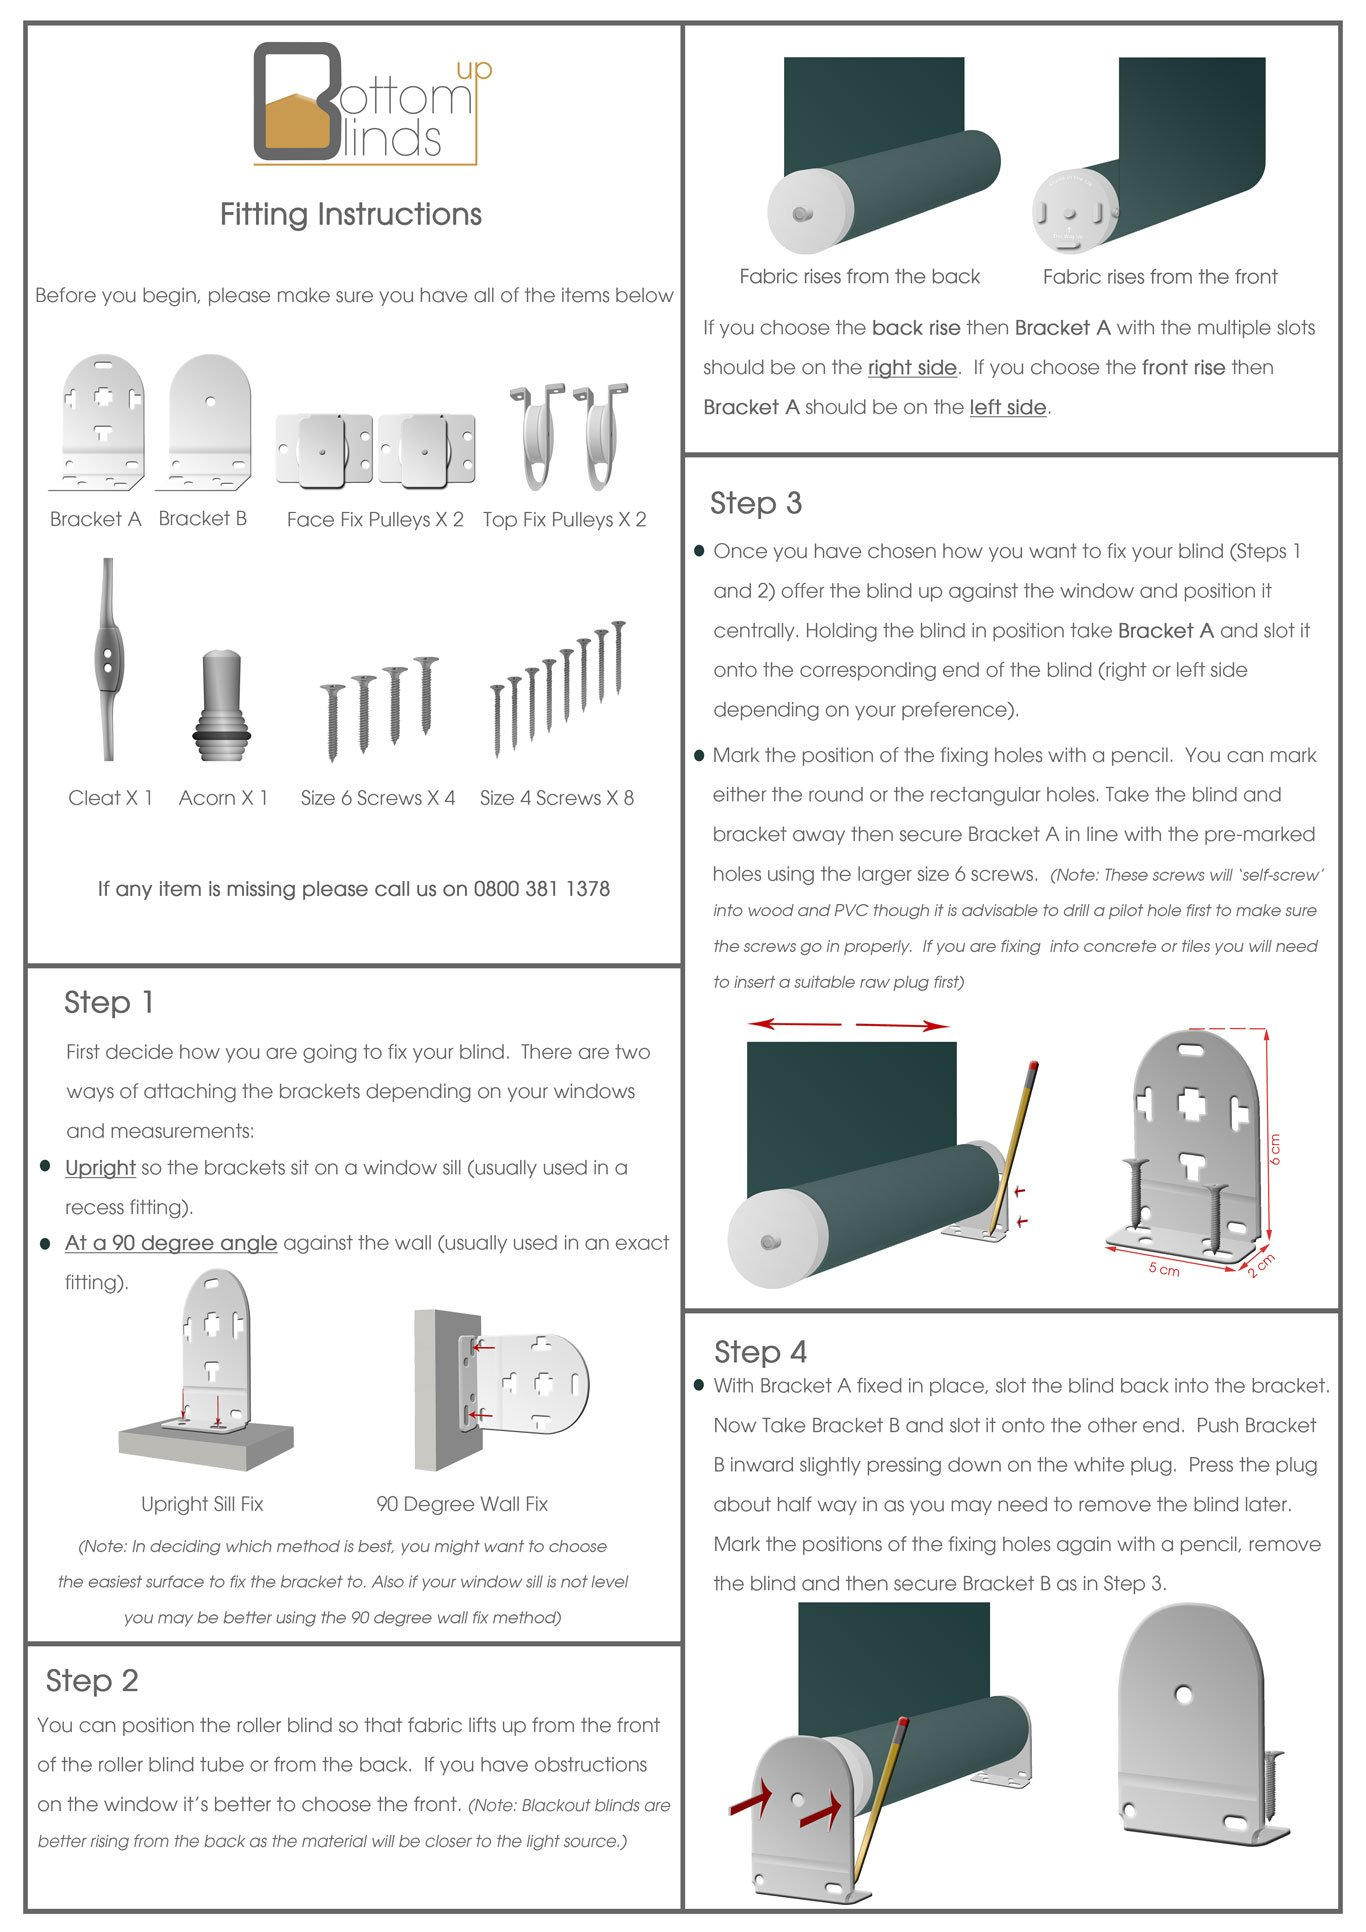 how to fit bottom up blinds page 1